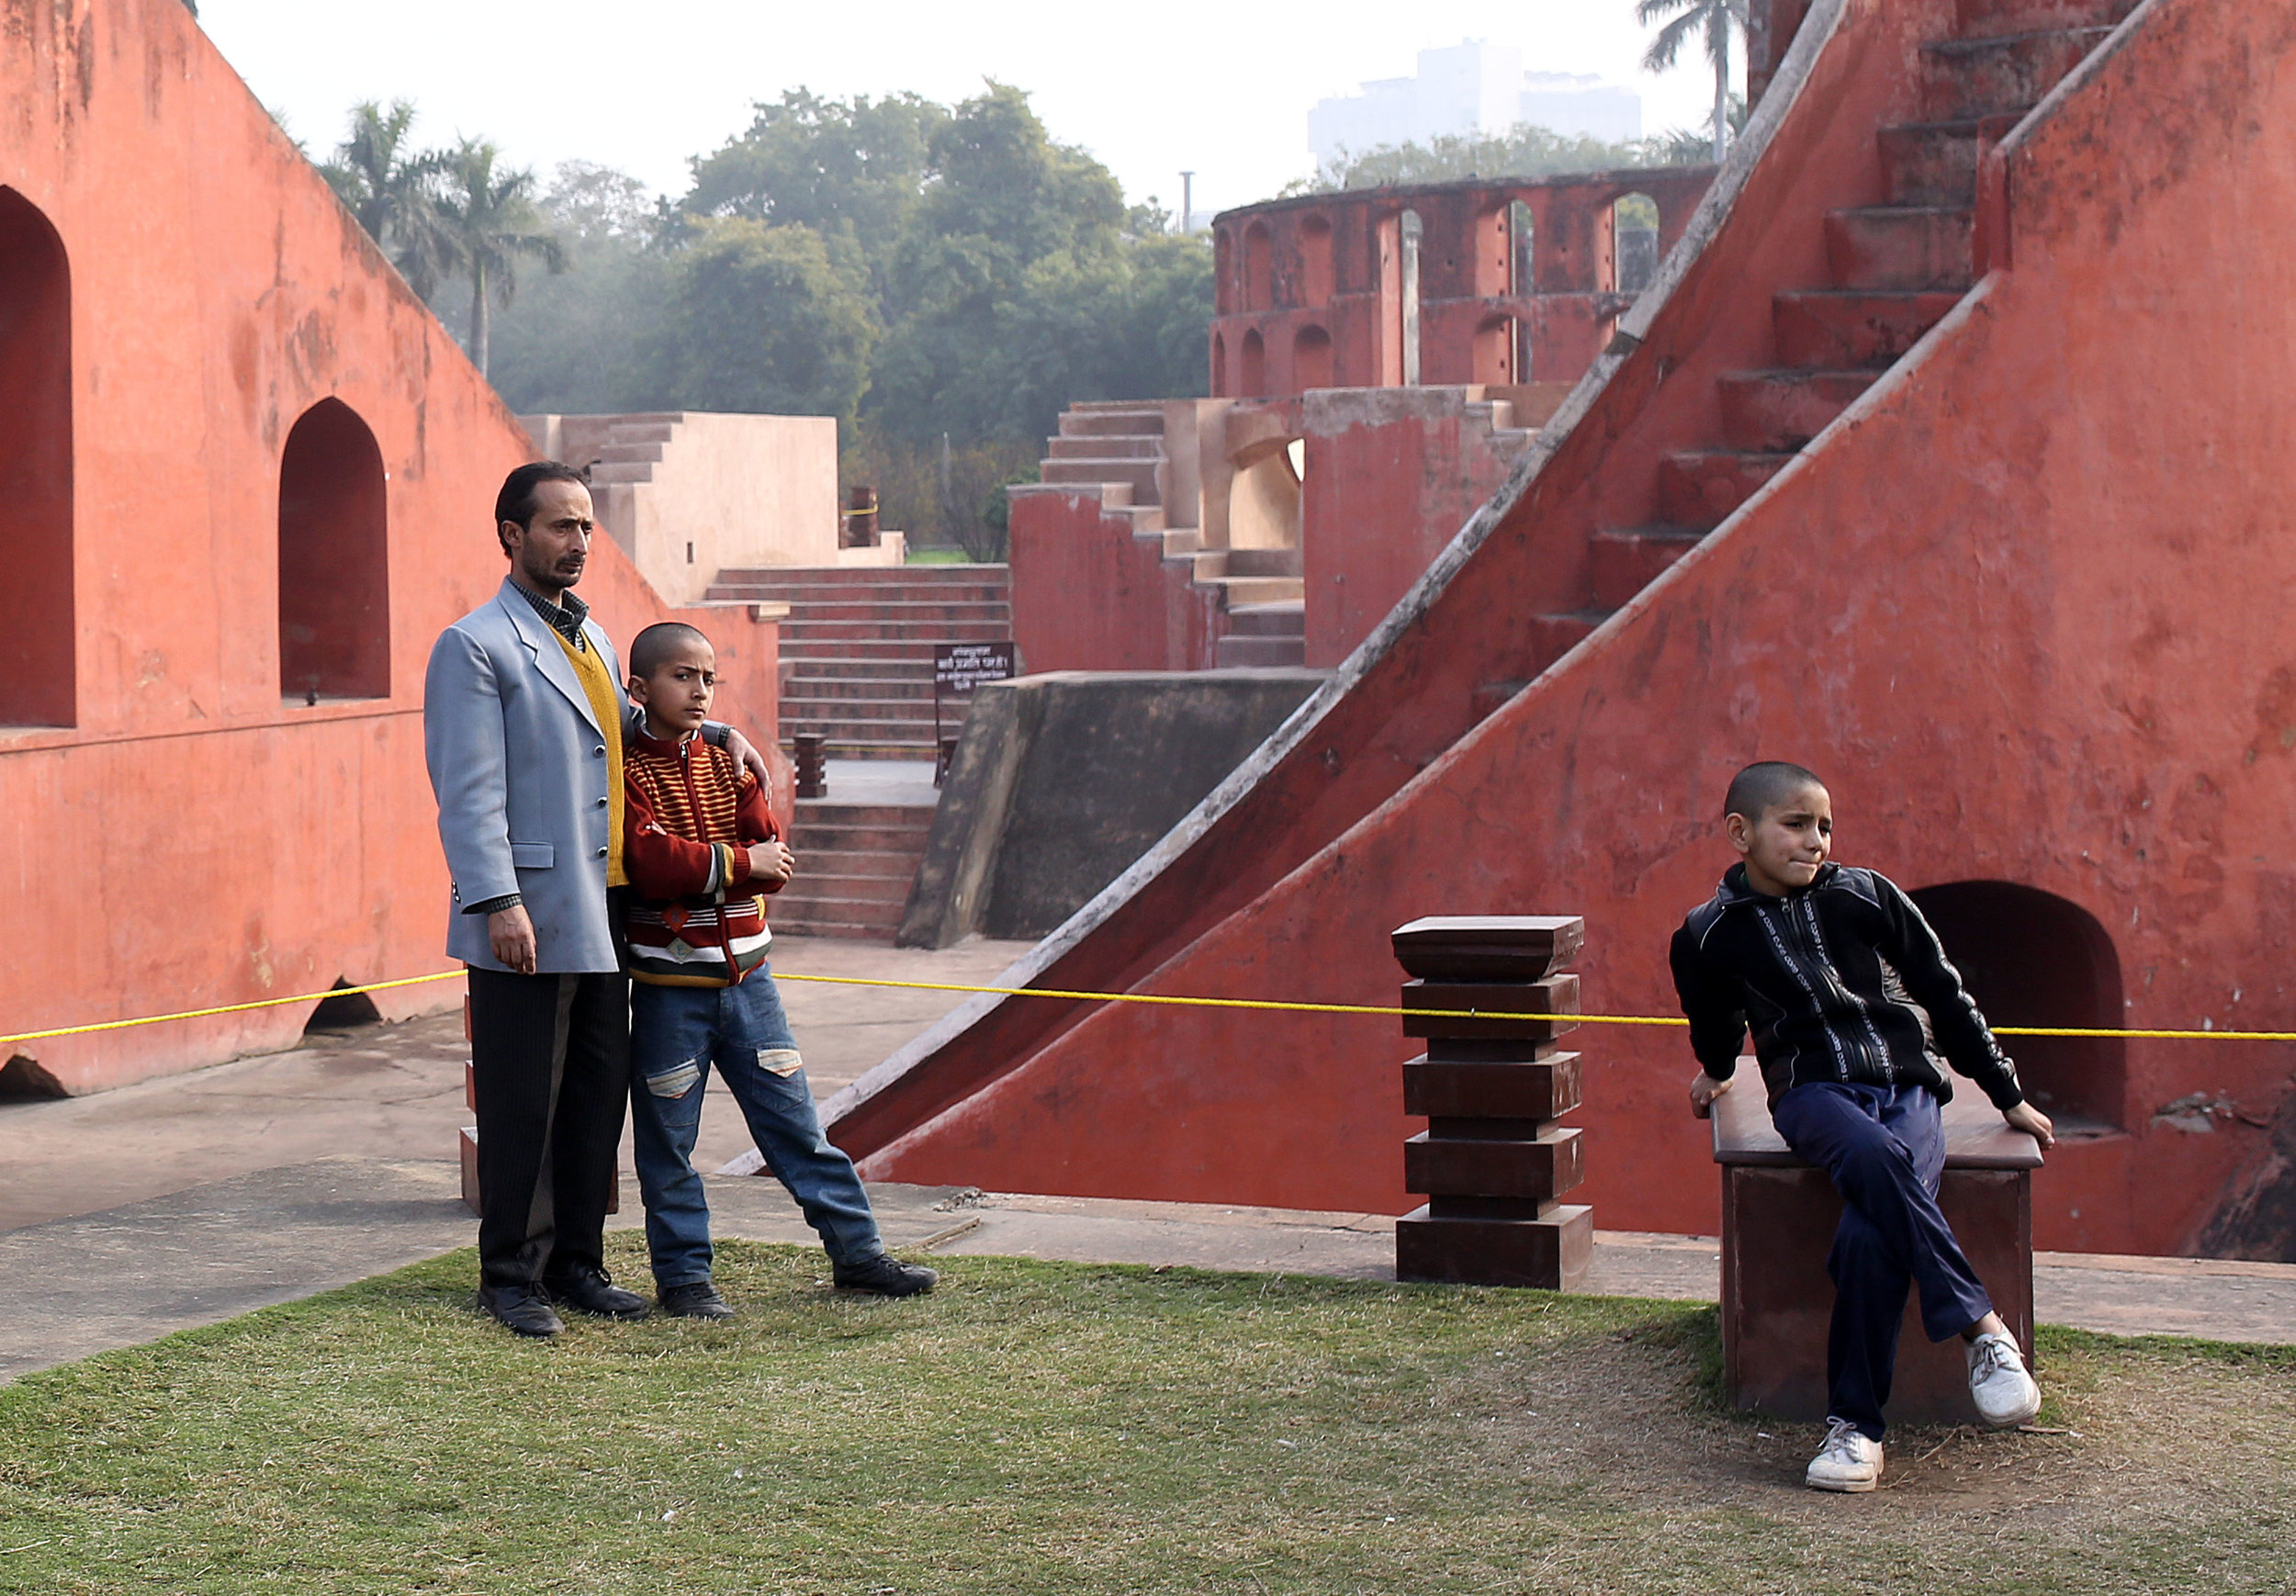 Children are pictured posing for photographs among the astronomy instruments at the Jantar Mantar in New Delhi.